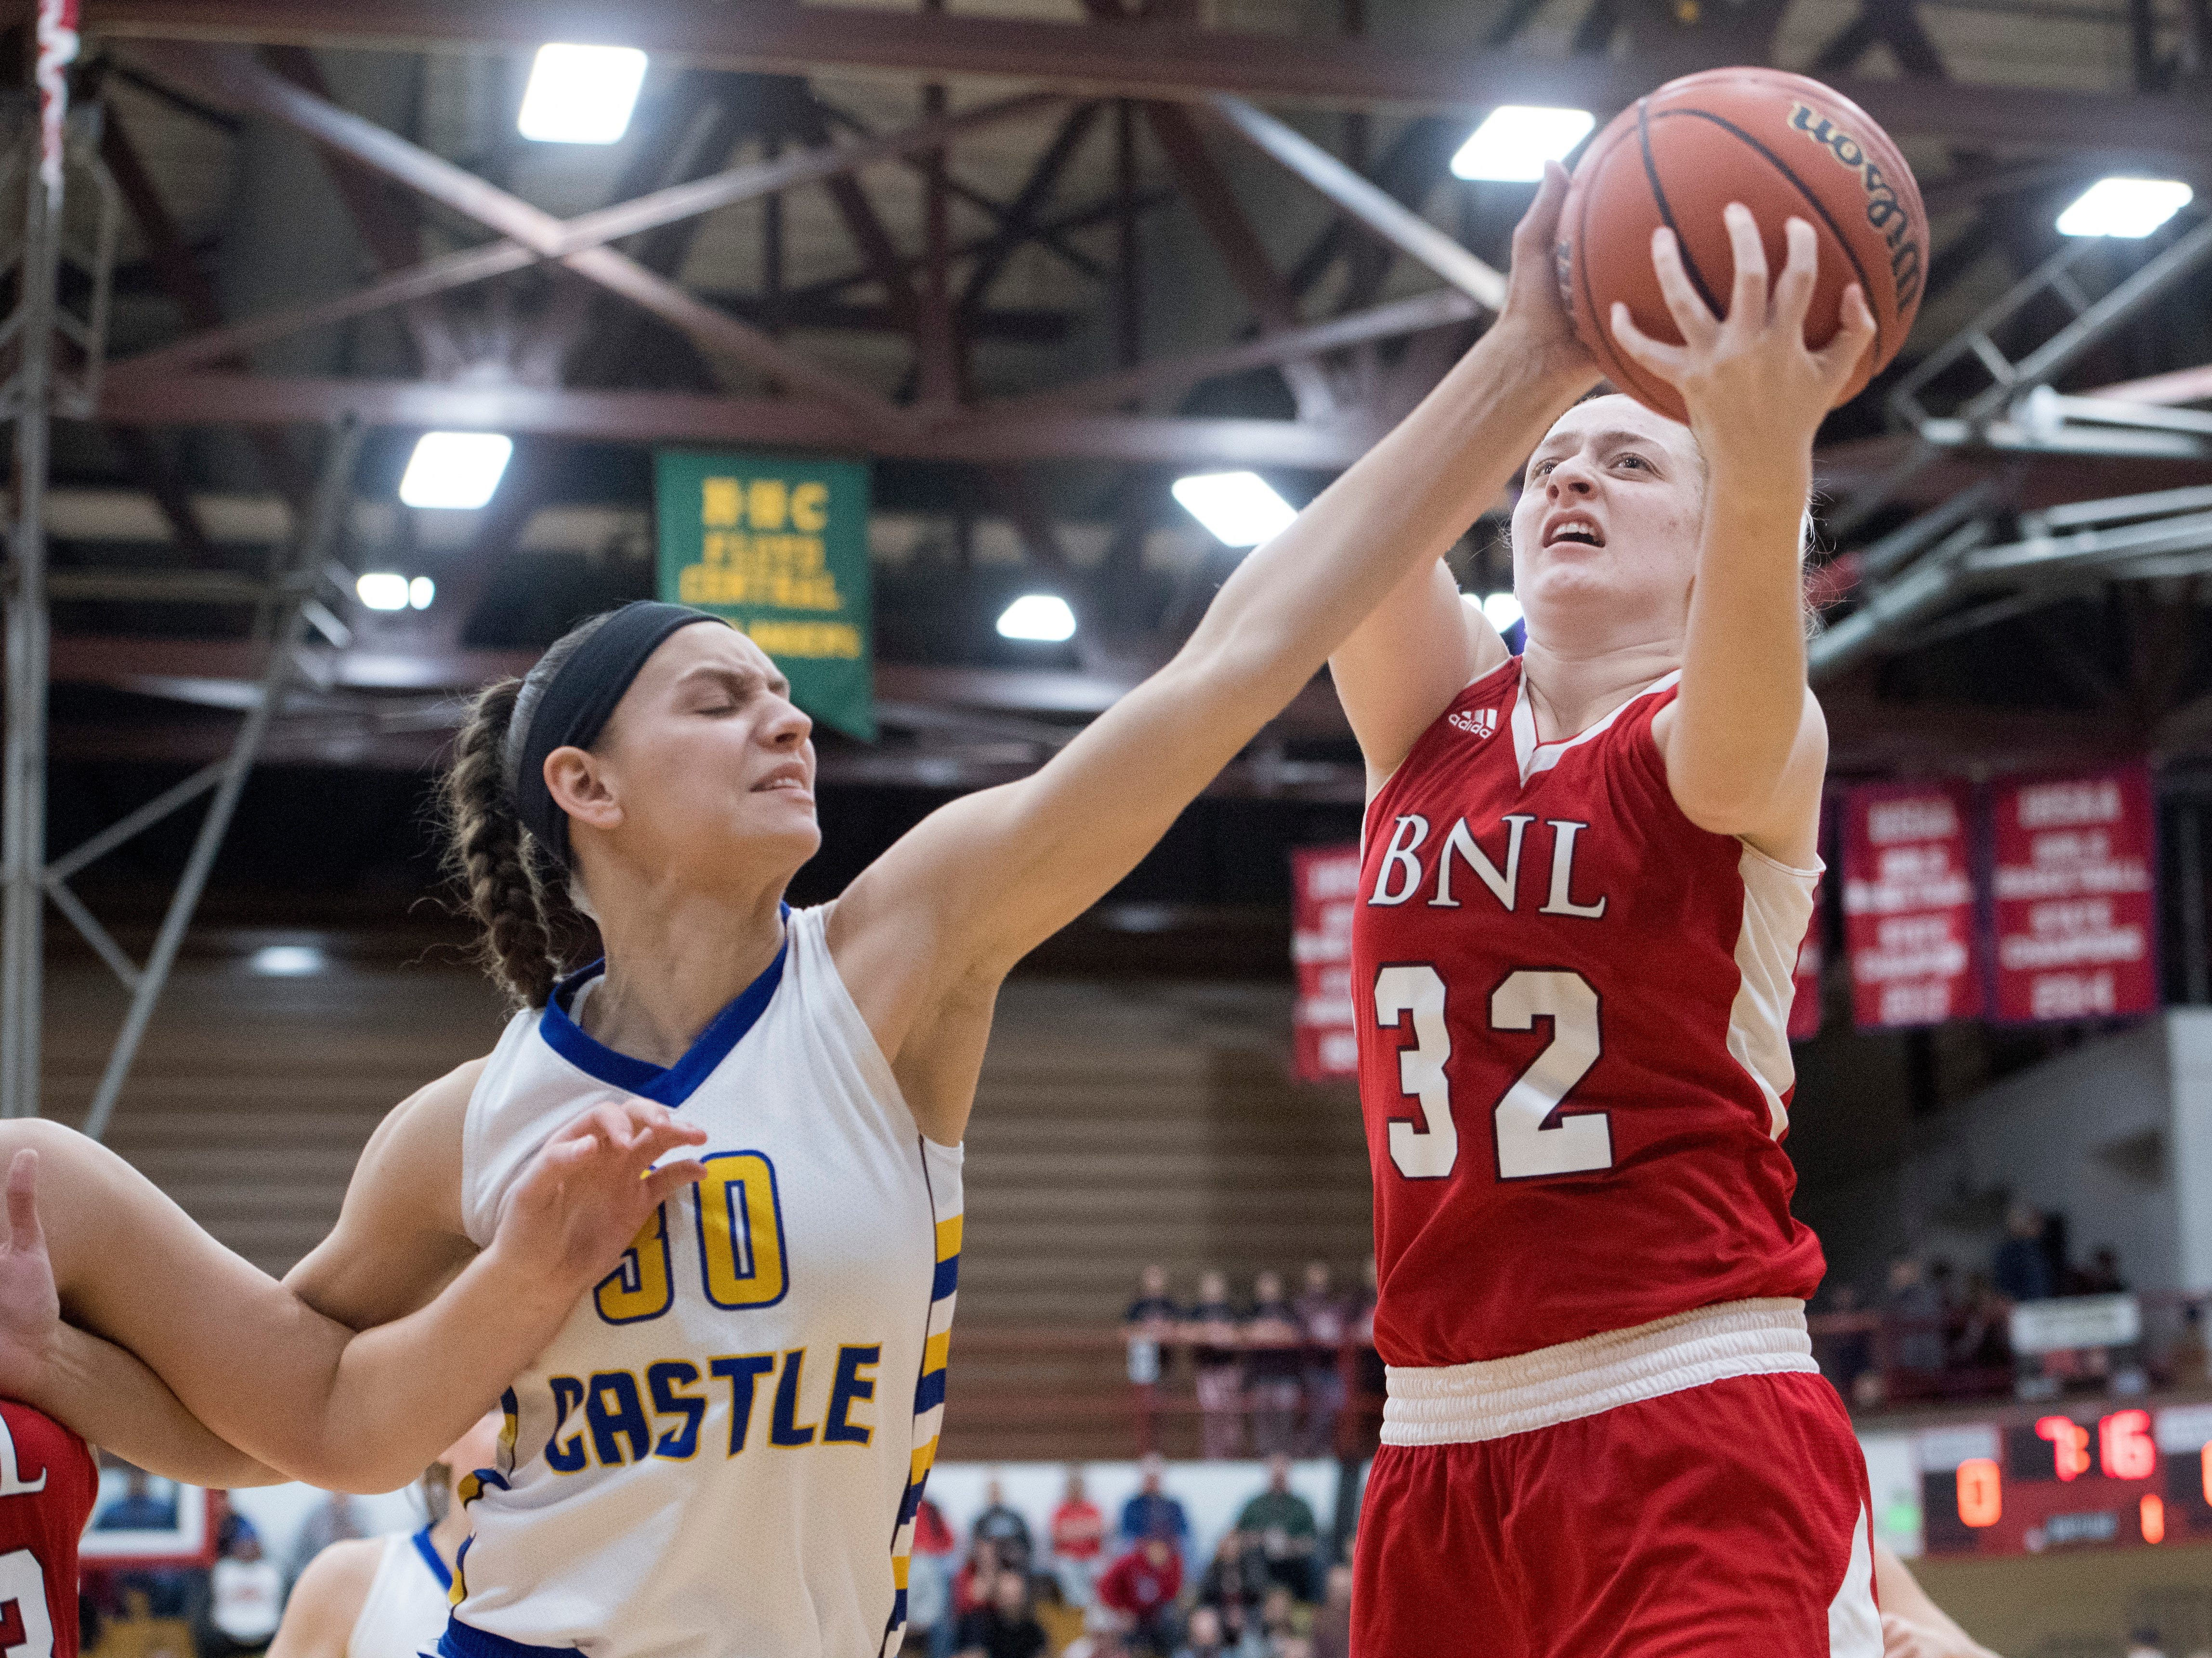 Bedford North Lawrence's Madison Webb (32) pulls down a rebound during the  IHSAA Girls Basketball Class 4A Regional Championship game against the Castle Knights at the Stars Field House in Bedford, Ind. Saturday, Feb. 9, 2019.